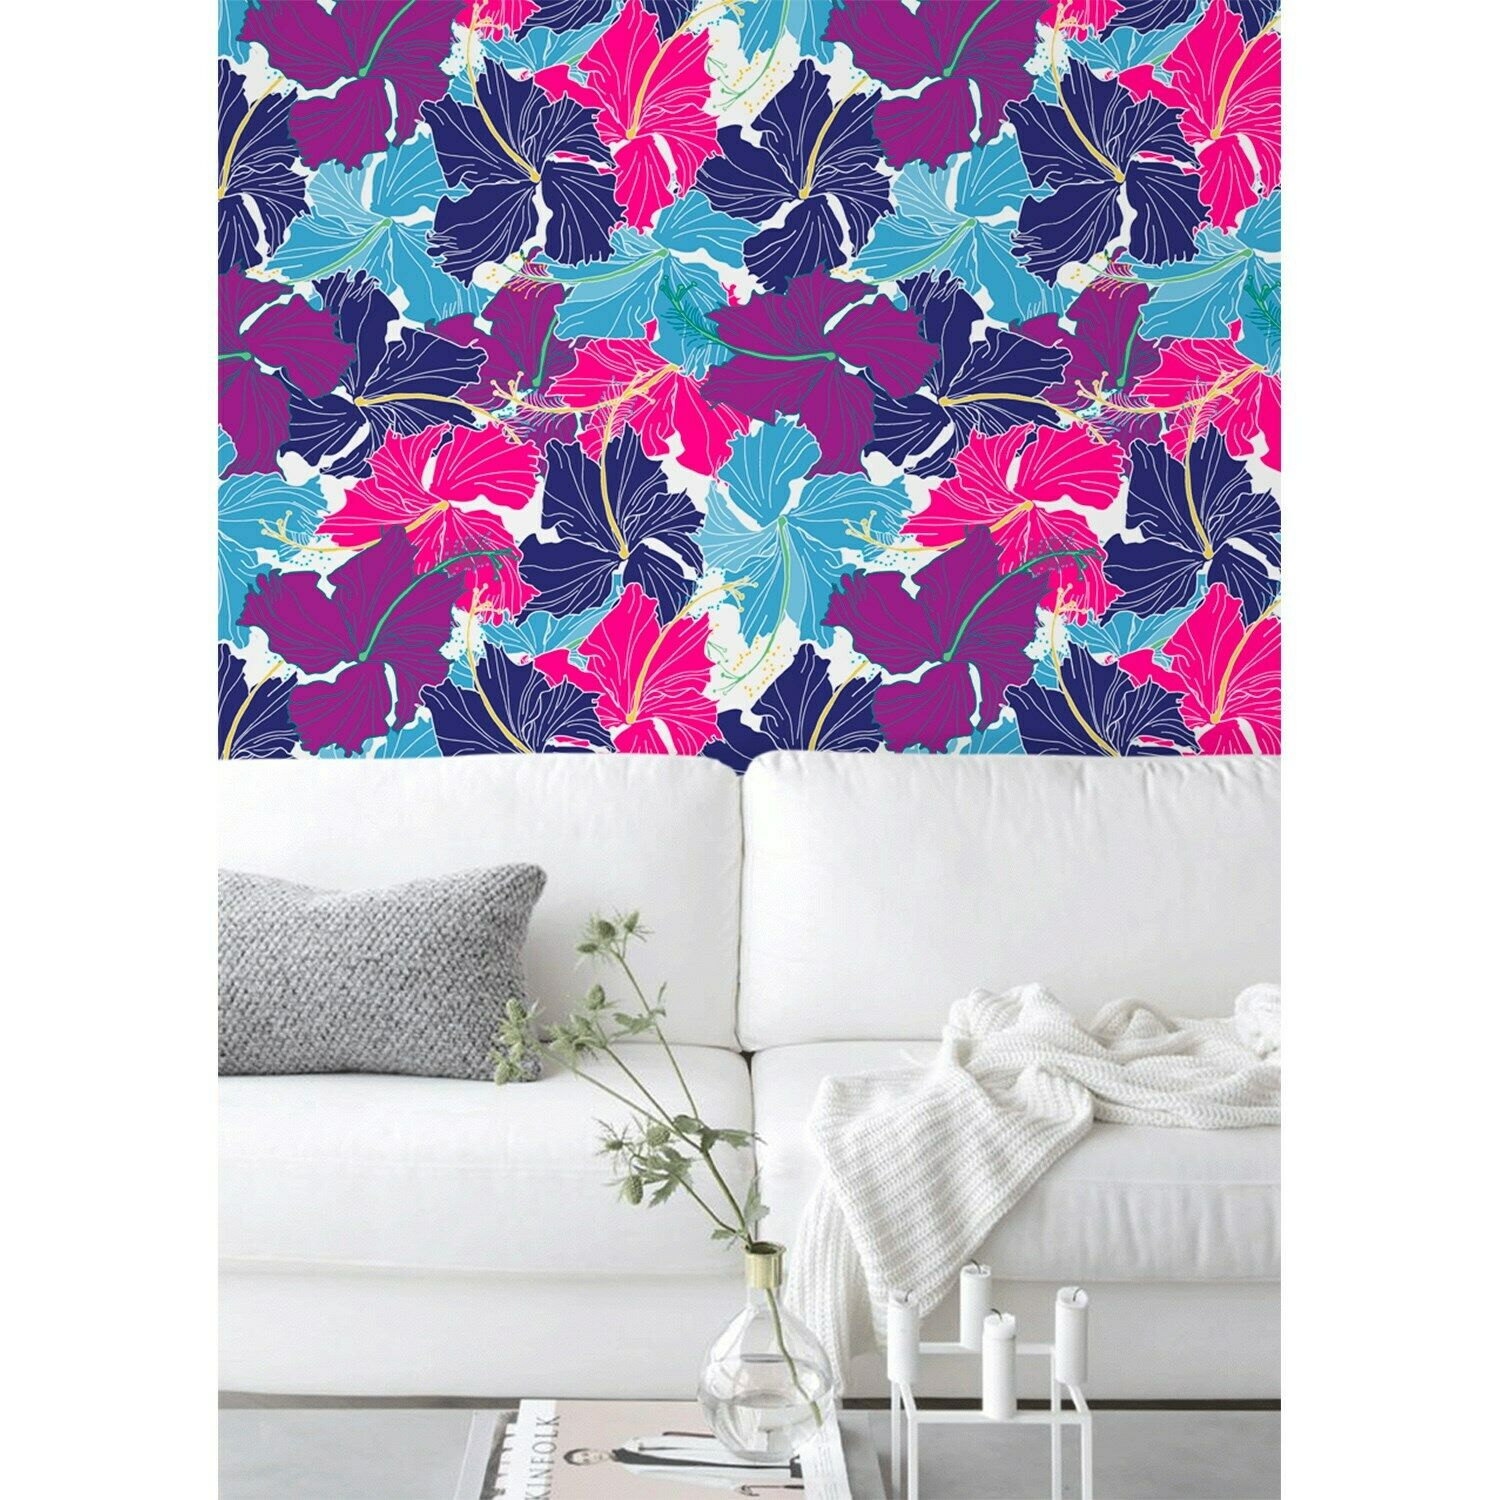 Draw Hibiscus Roll Non-Woven wallpaper Traditional mural Home bedroom decor